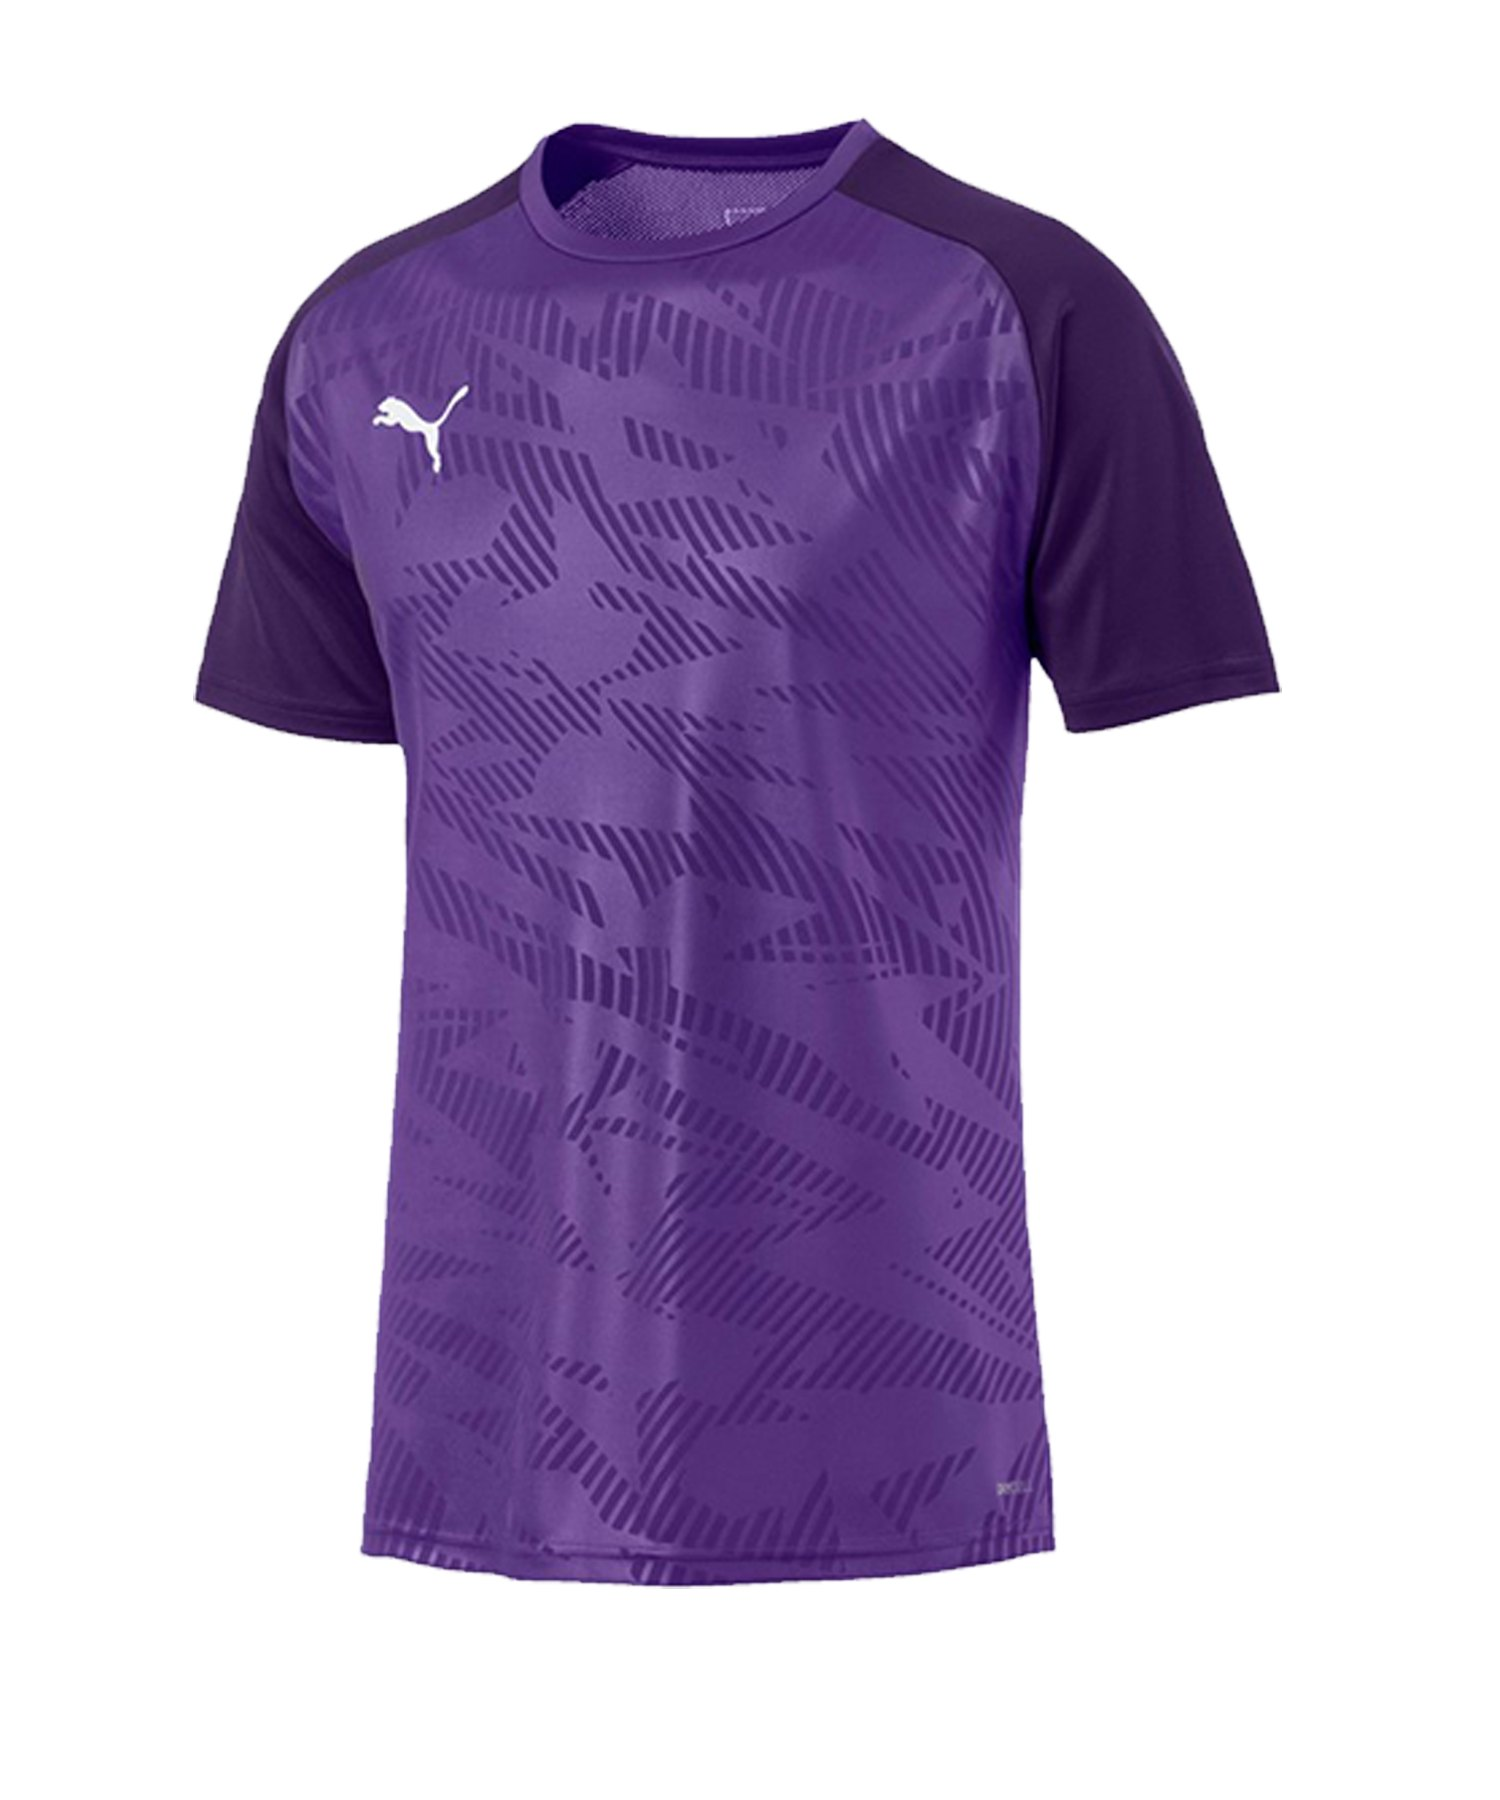 PUMA CUP Training Core T-Shirt Lila F10 - lila